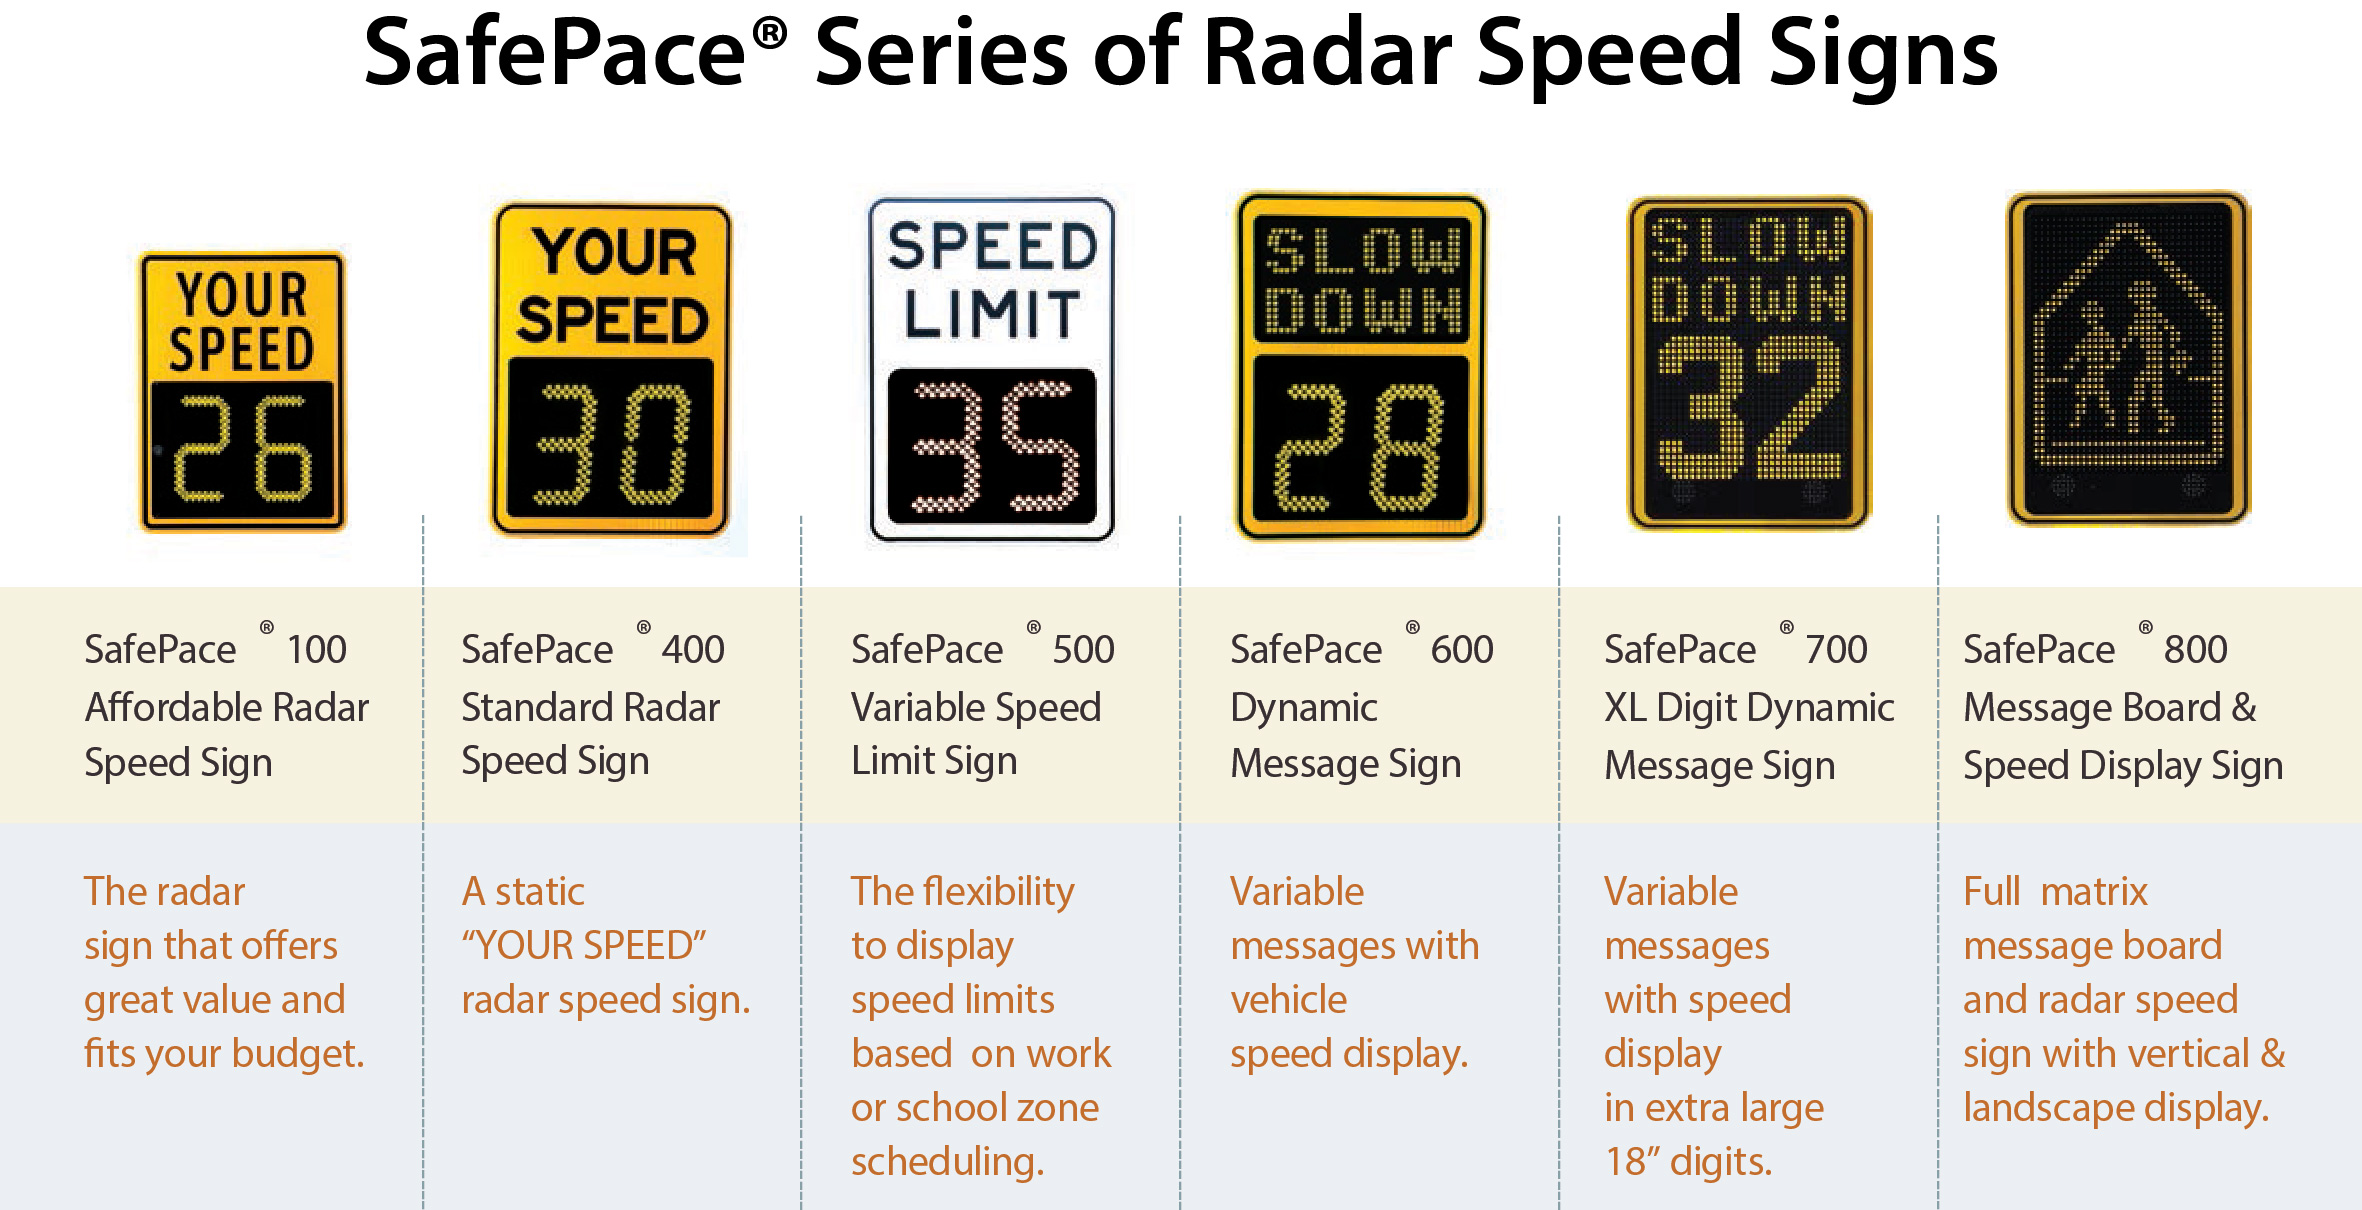 Safepace Signs